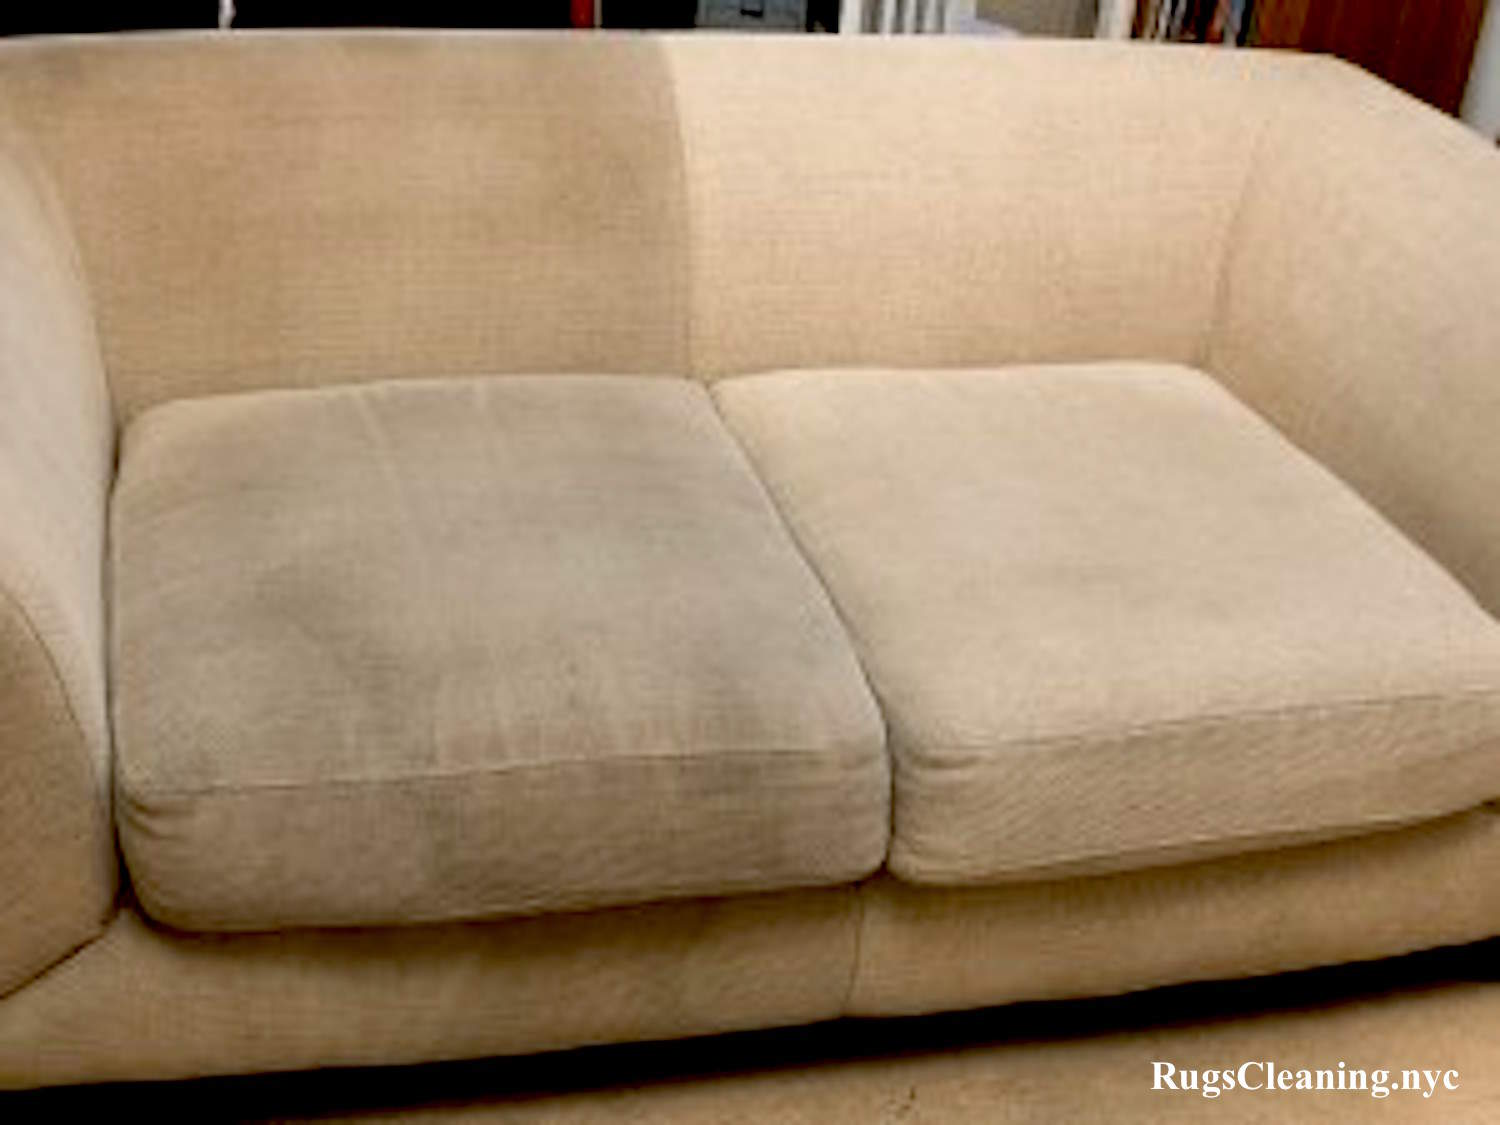 Sofa Cleaning Nyc Service